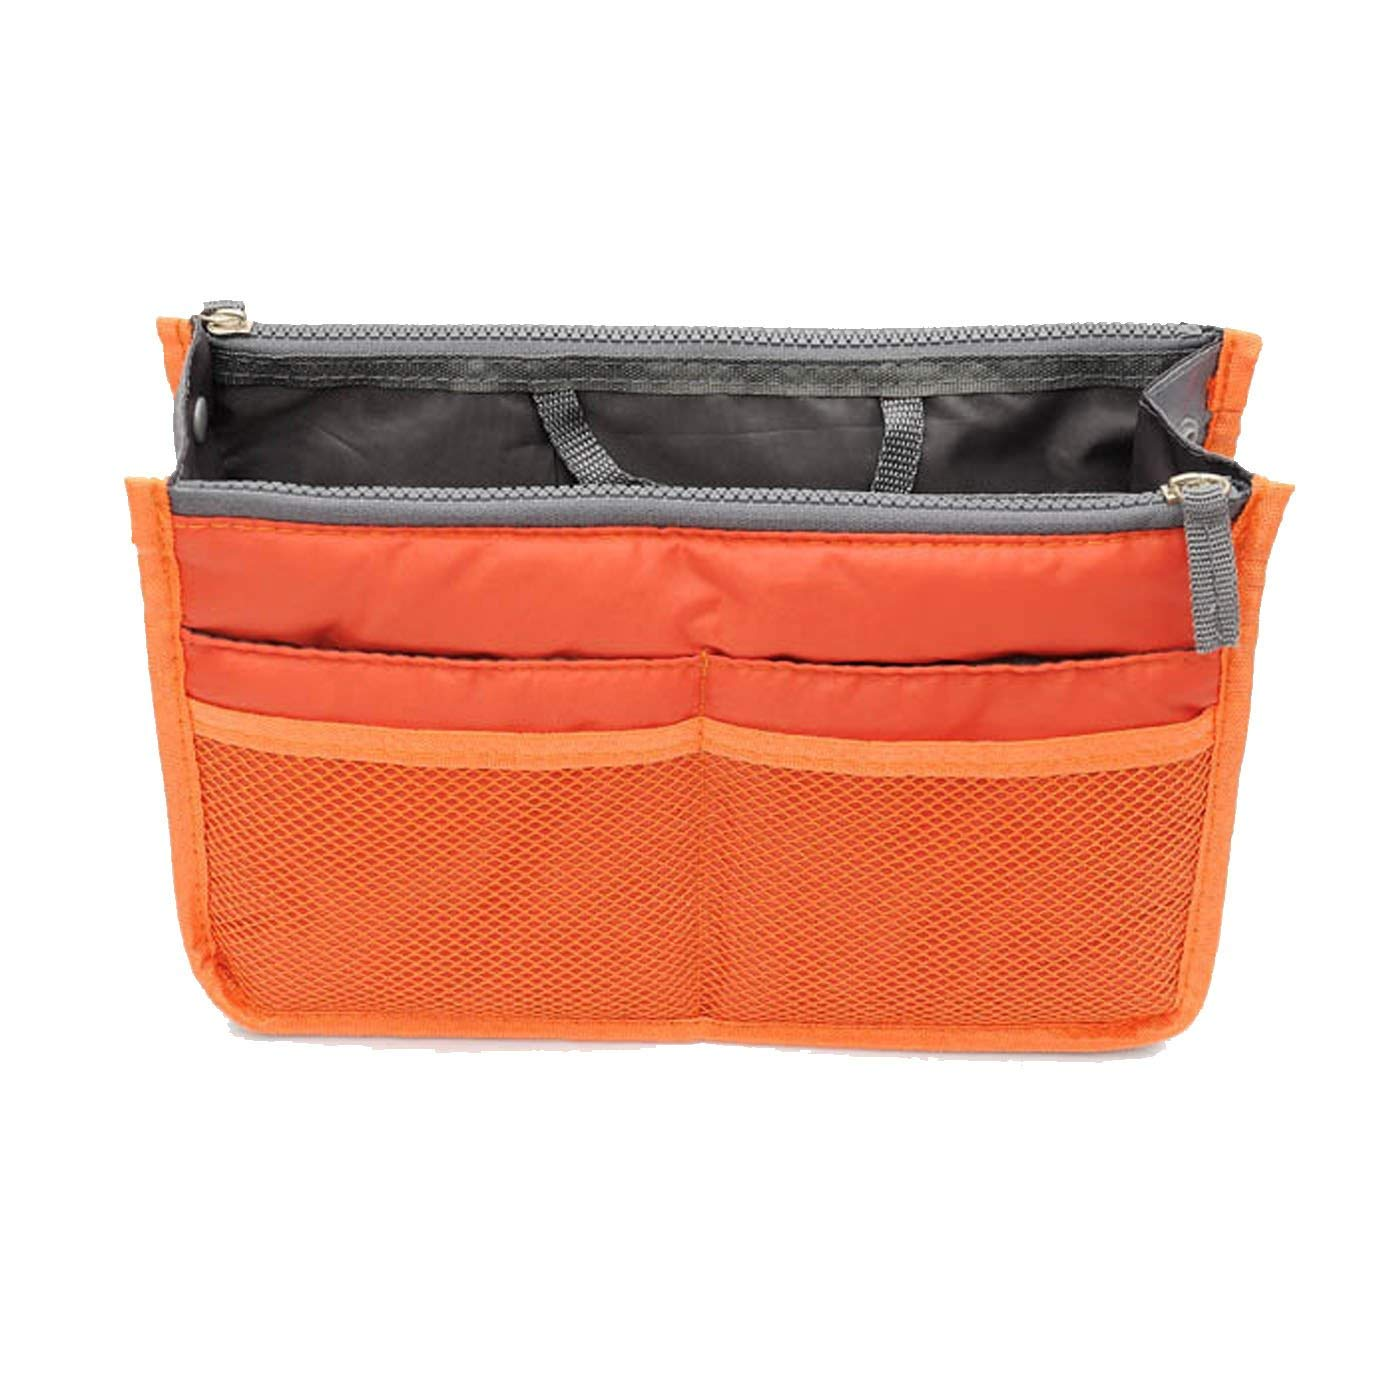 Handbag Purse Organizer Insert Liner Bag in Bag with Handles 13 Pockets